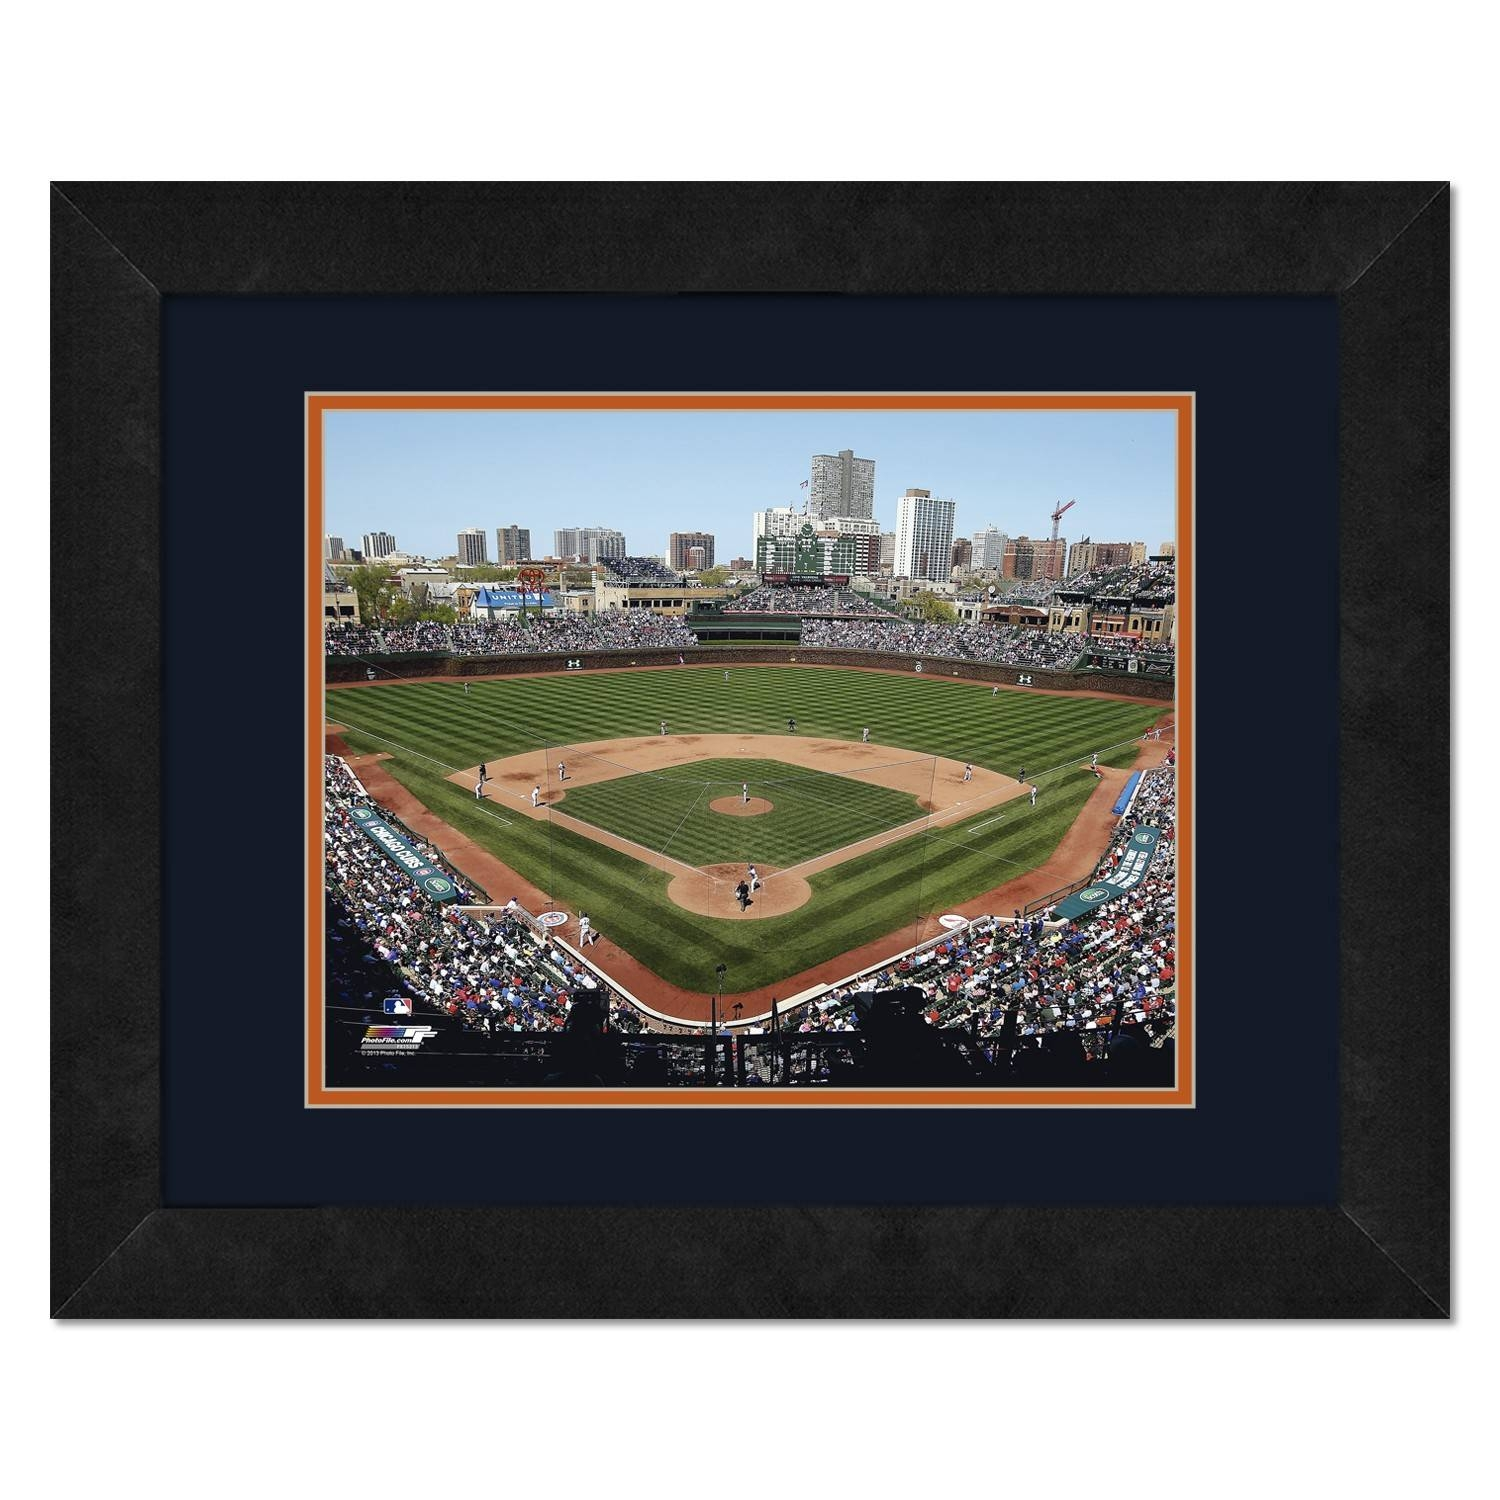 Wrigley Field 3D Stadium Wall Art | Chicago Tribune Store In Most Current Baseball 3D Wall Art (View 20 of 20)